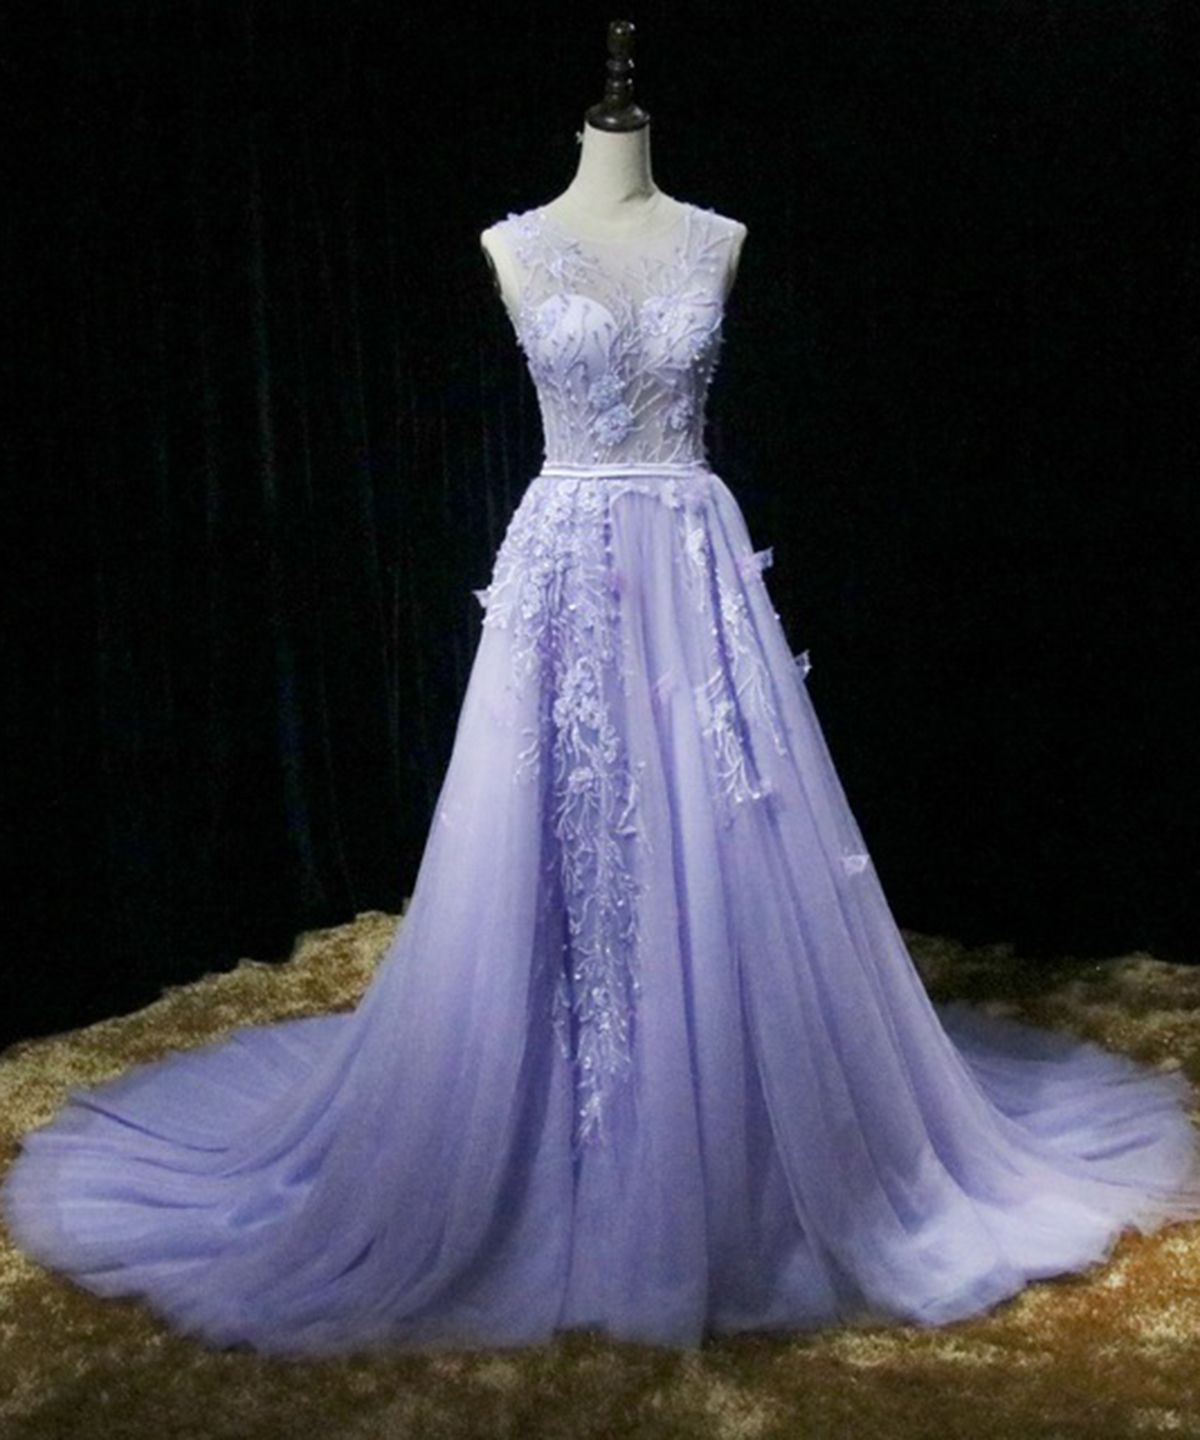 Violet Tulle Crystal Long Embroidery Senior Prom Dress Long Pageant Prom Gown From Sweetheart Dress Violet Prom Dresses Senior Prom Dresses Prom Dresses [ 1440 x 1200 Pixel ]